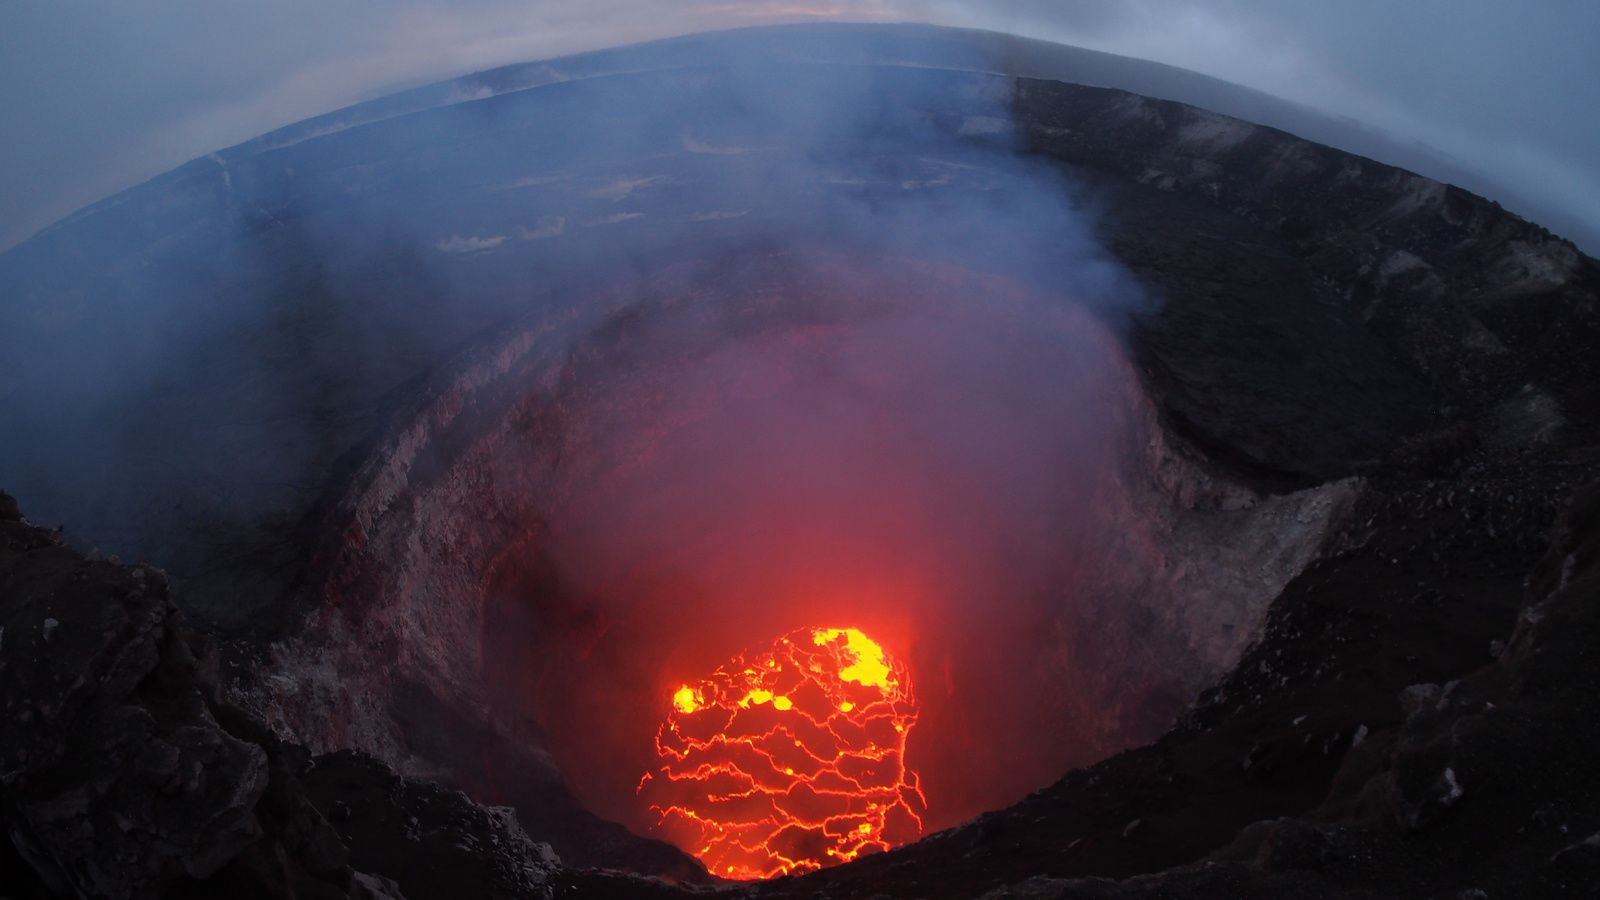 Kilauea - Halema'uma'u - 06.05.2018 The summit lava lake has dropped significantly over the past few days, and this evening was roughly 220 m below the crater rim.- HVO